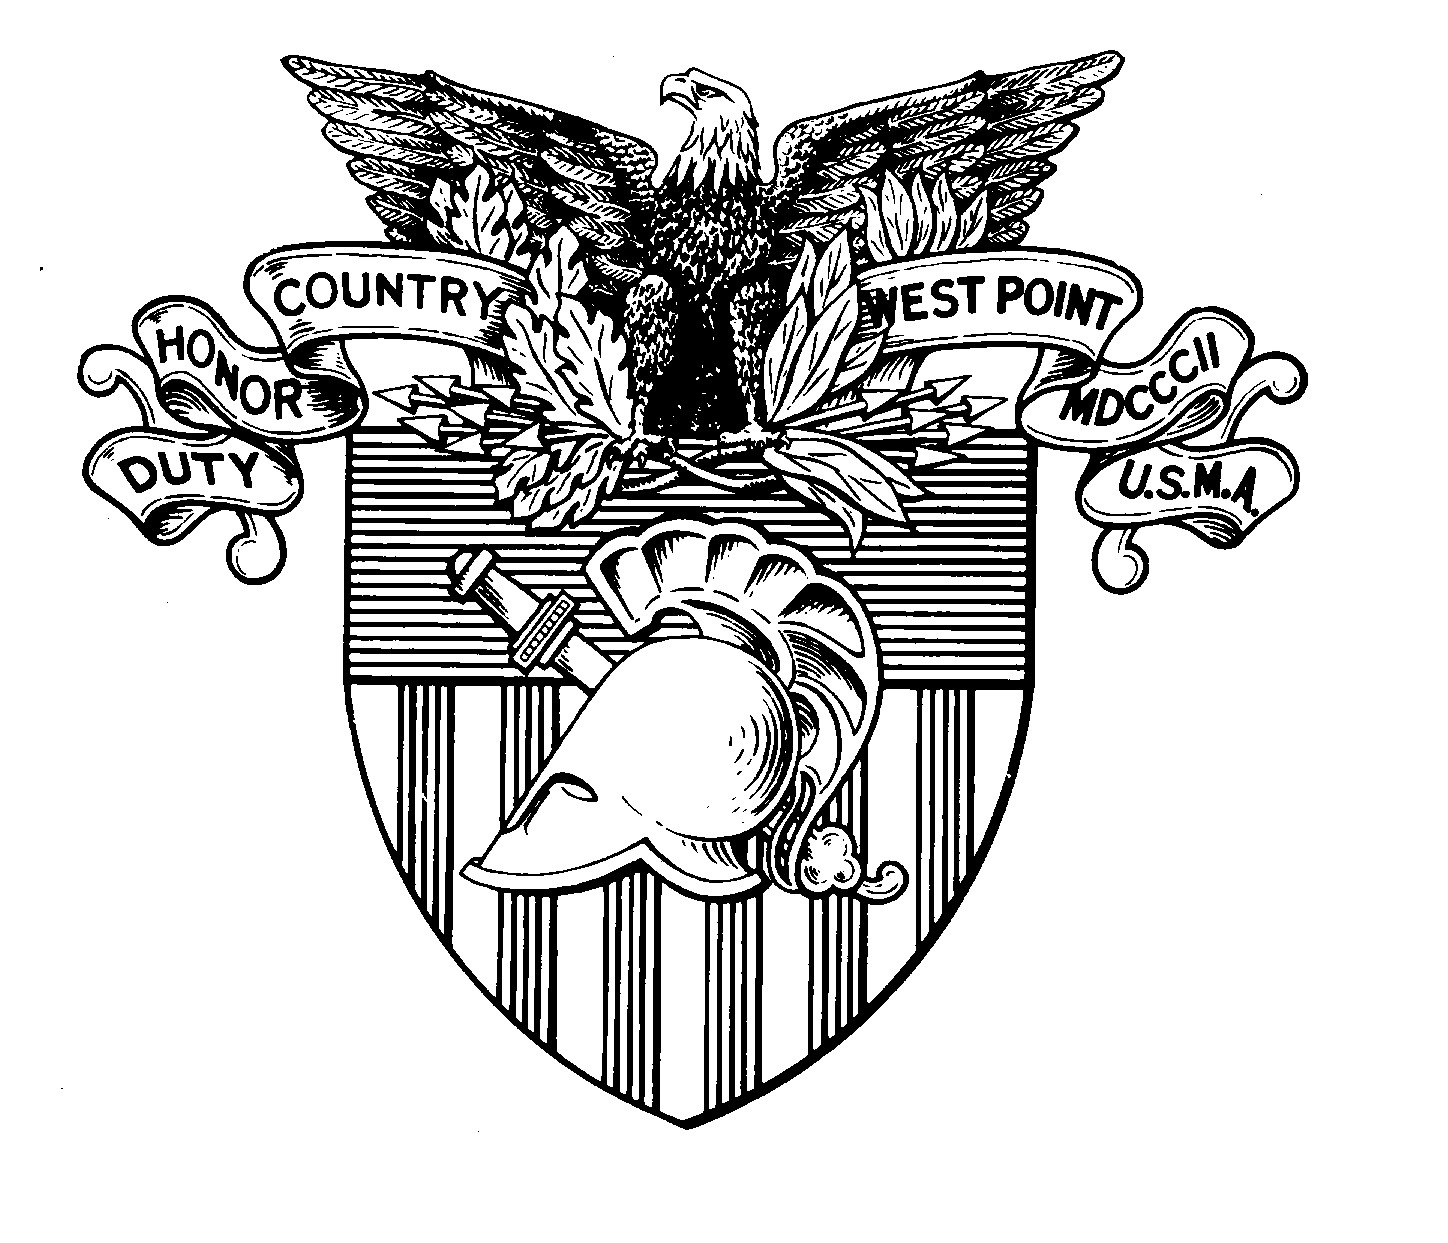 West Point Society Of Washington And Puget Sound